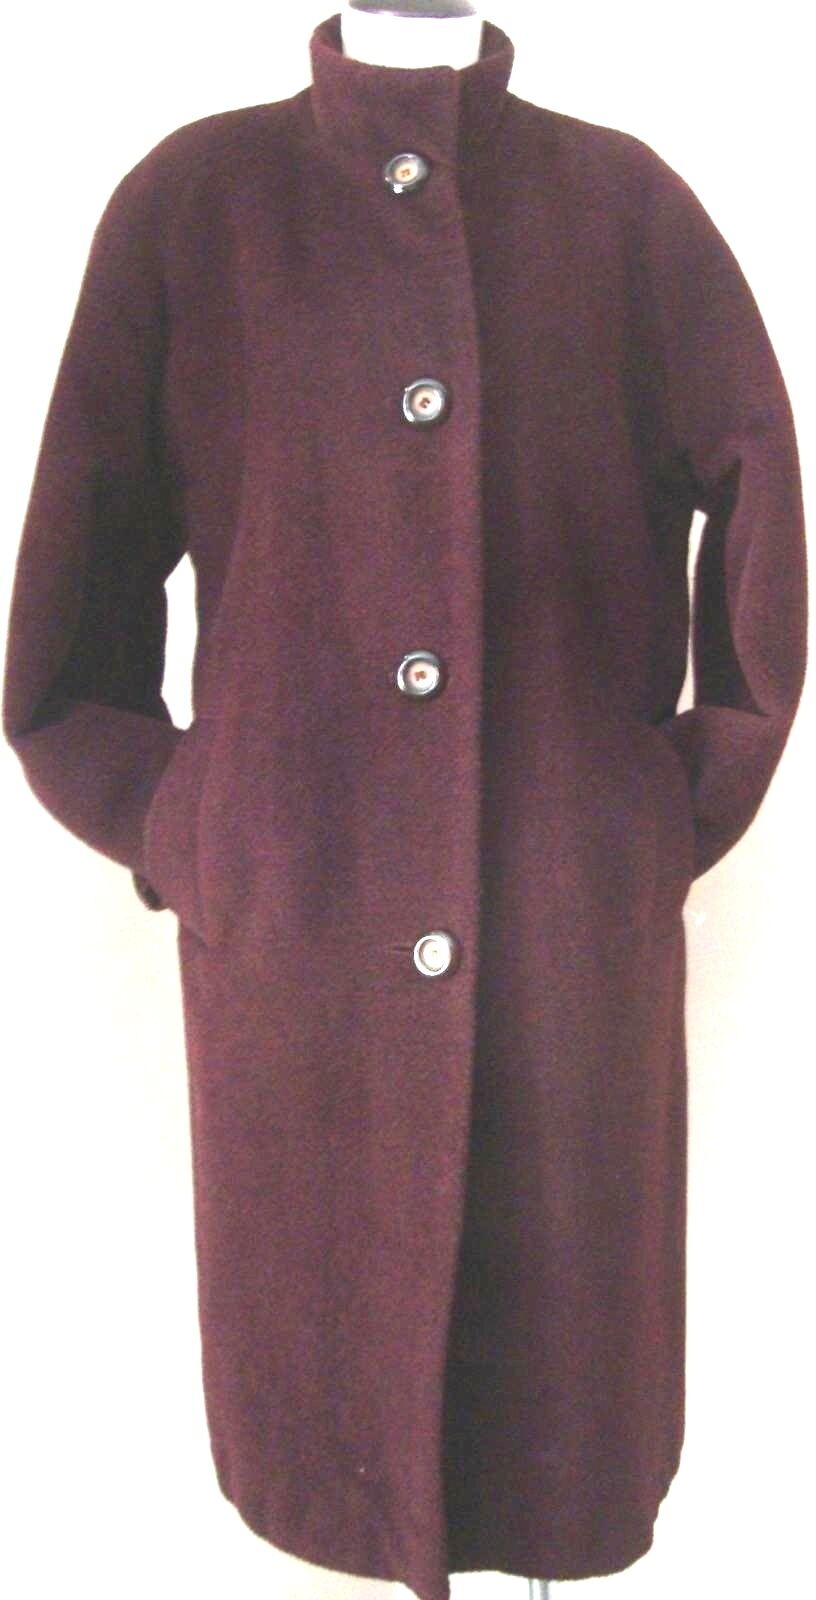 JONES NEW YORK DARK PURPLE AUBERGINE ALPACA & WOOL BLEND WINTER COAT EUC SZ 14